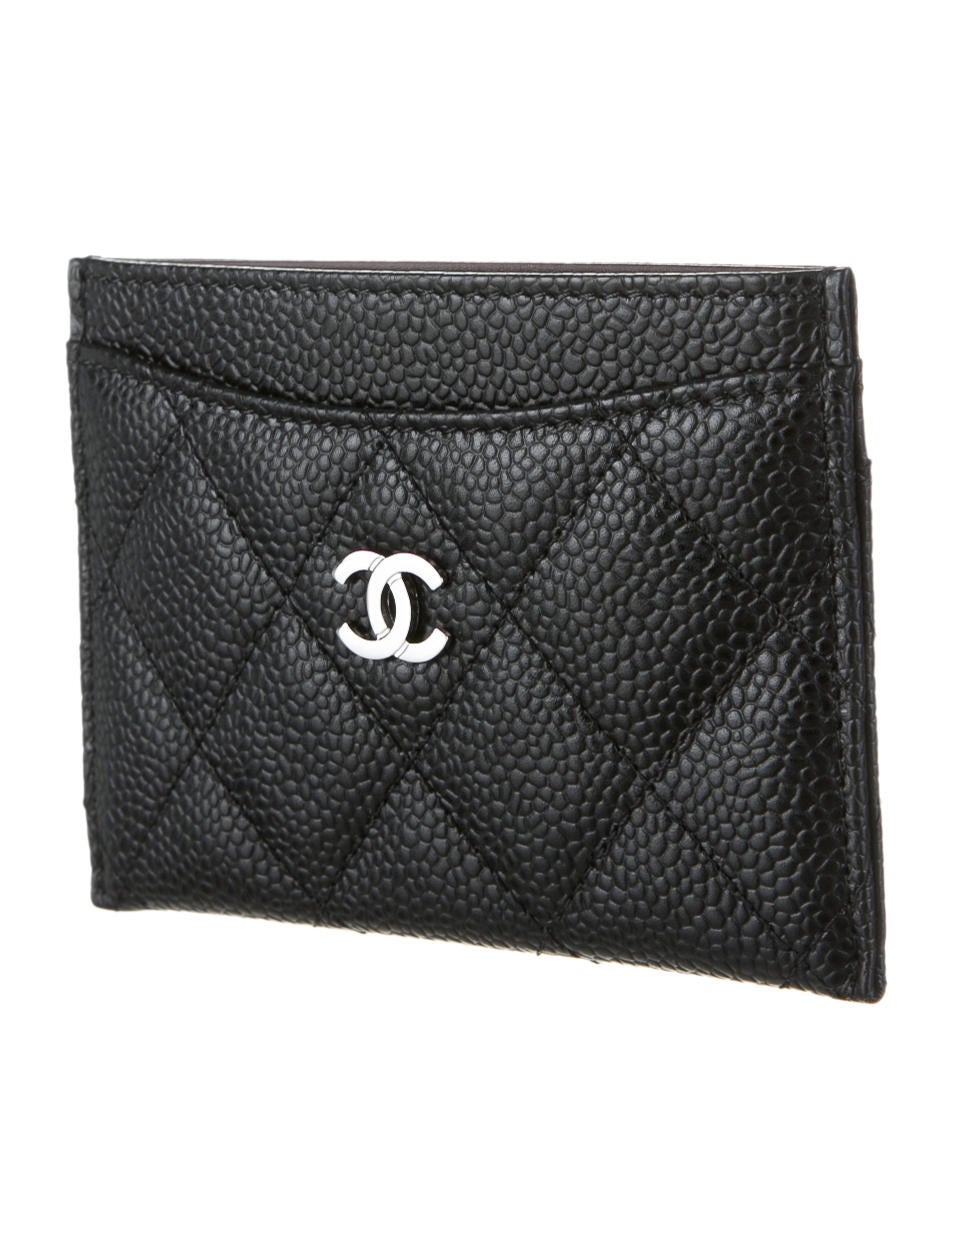 Chanel Card Holder - Accessories - CHA42488 | The RealReal